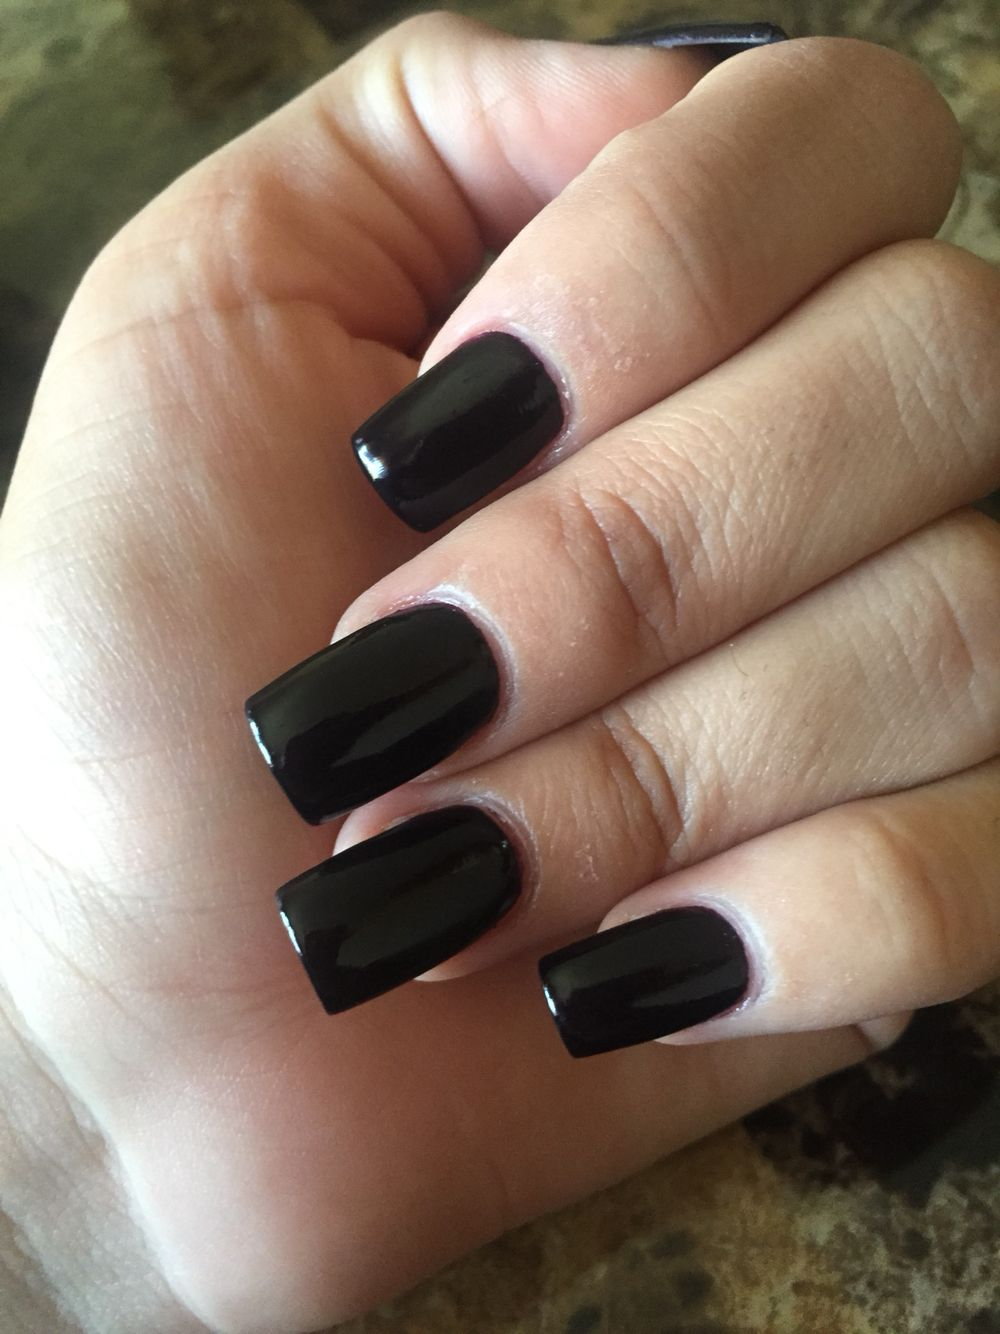 Lincoln Park After Dark By Opi On Square Acrylic Nails Square Acrylic Nails Short Square Acrylic Nails Long Square Acrylic Nails